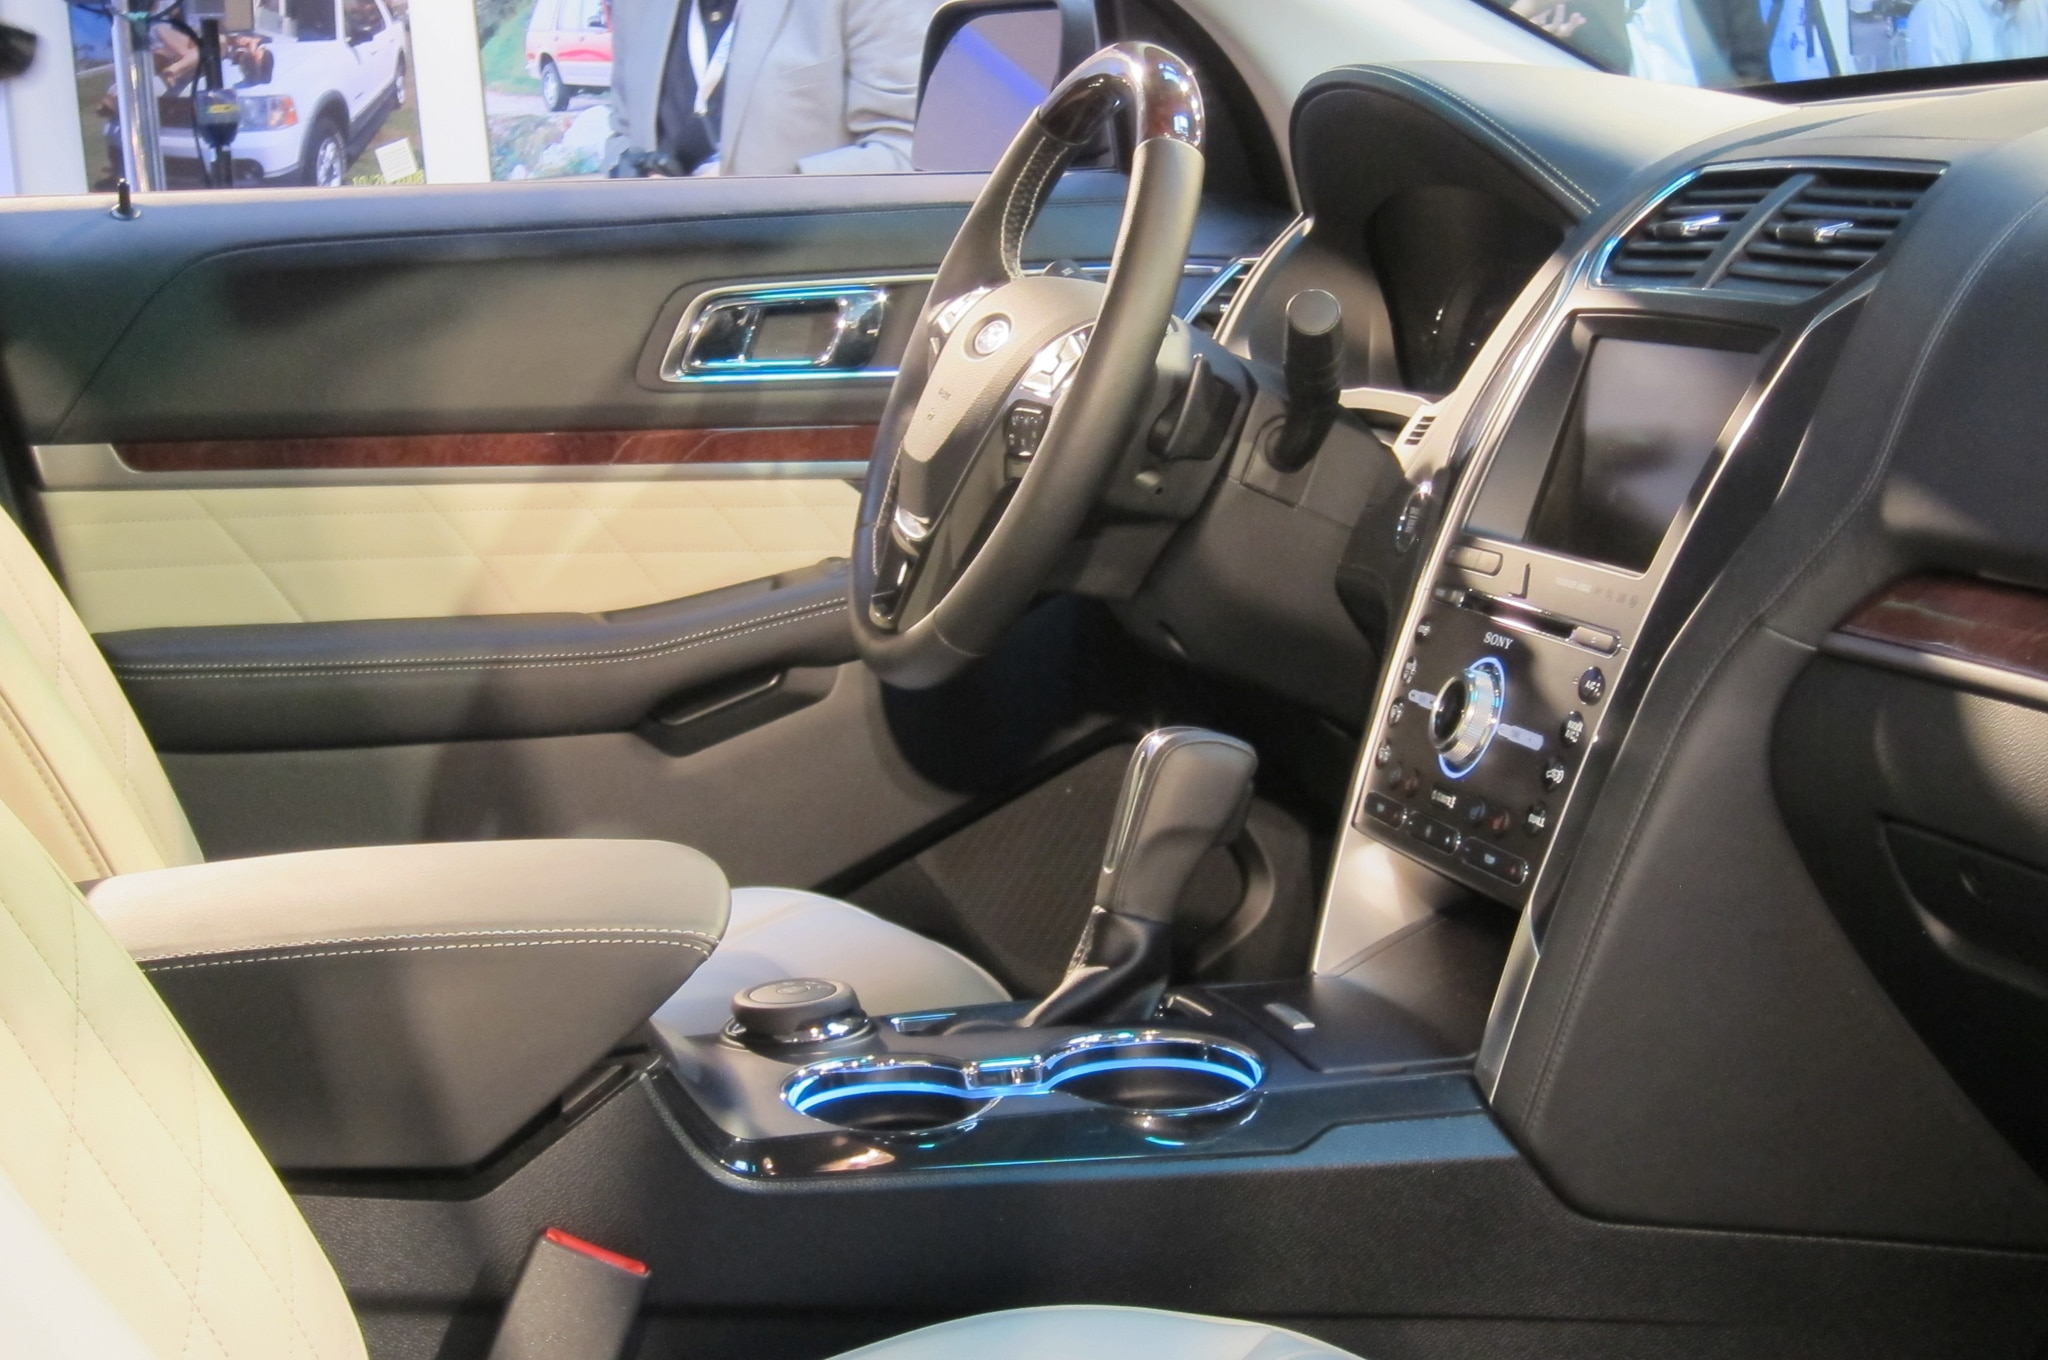 Nevertheless, The Interior Of The 2016 Ford Explorer ...